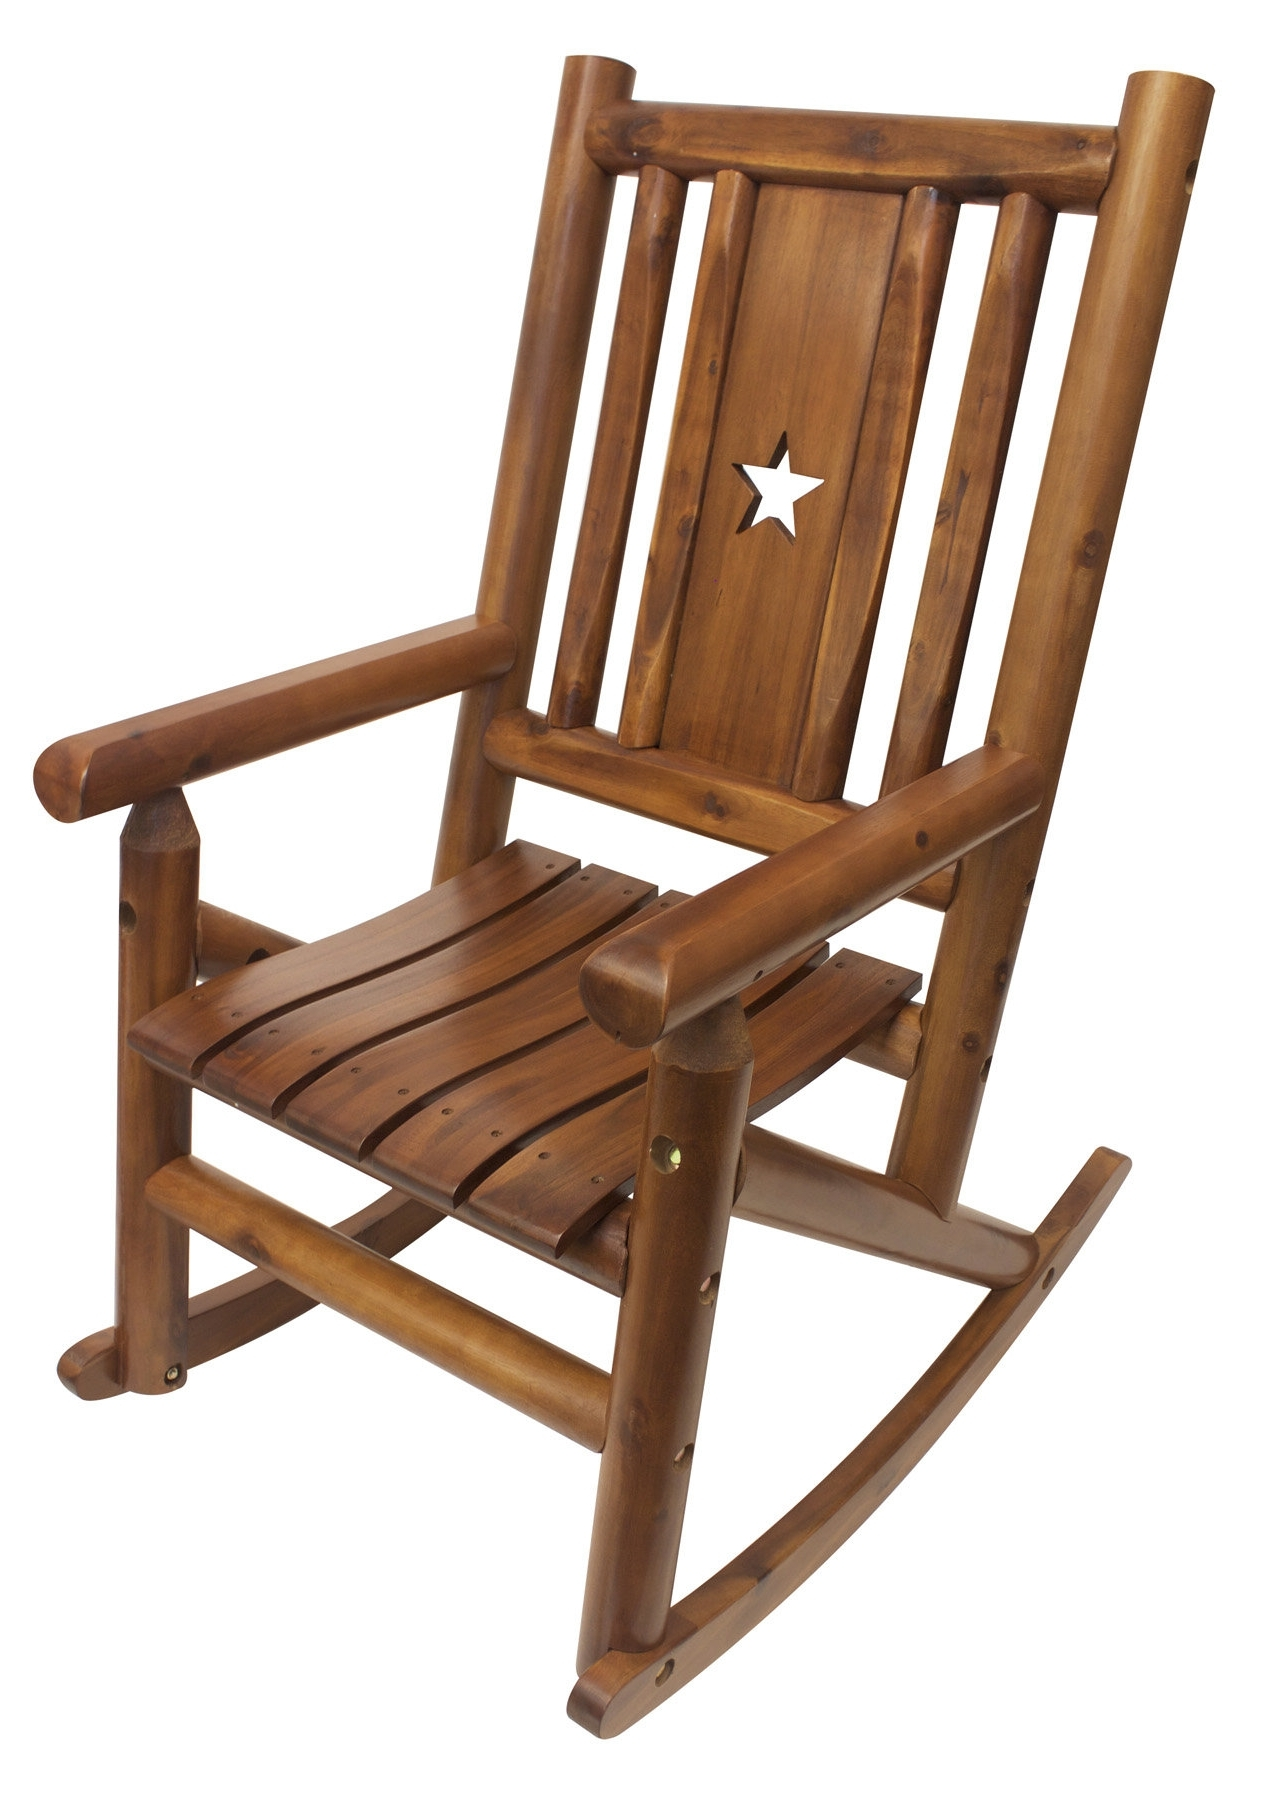 Wayfair For Char Log Patio Rocking Chairs With Star (View 7 of 15)